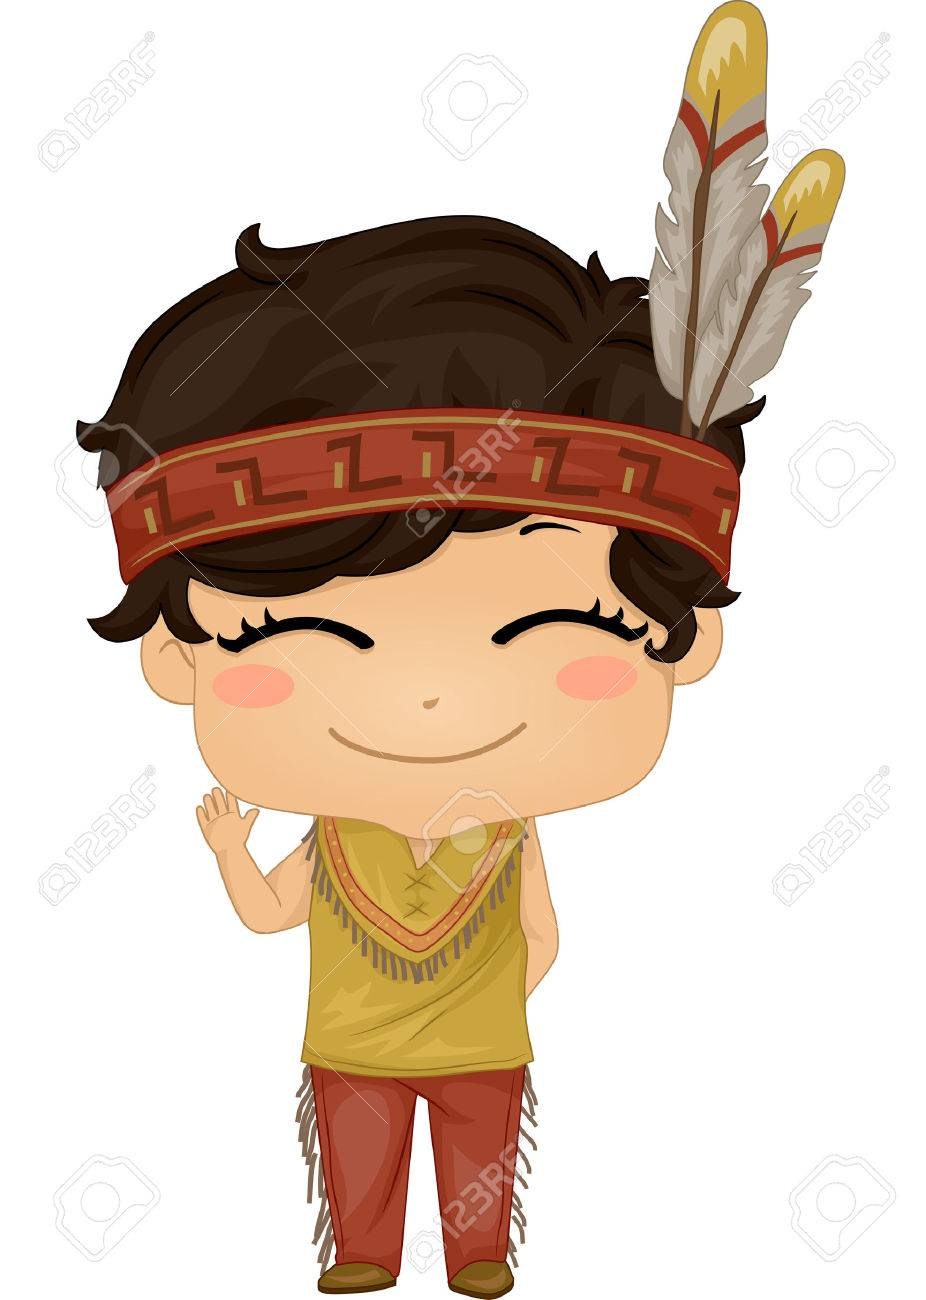 Illustration Featuring a Boy Wearing a Native American Costume Stock Vector - 33001597  sc 1 st  123RF.com & Illustration Featuring A Boy Wearing A Native American Costume ...